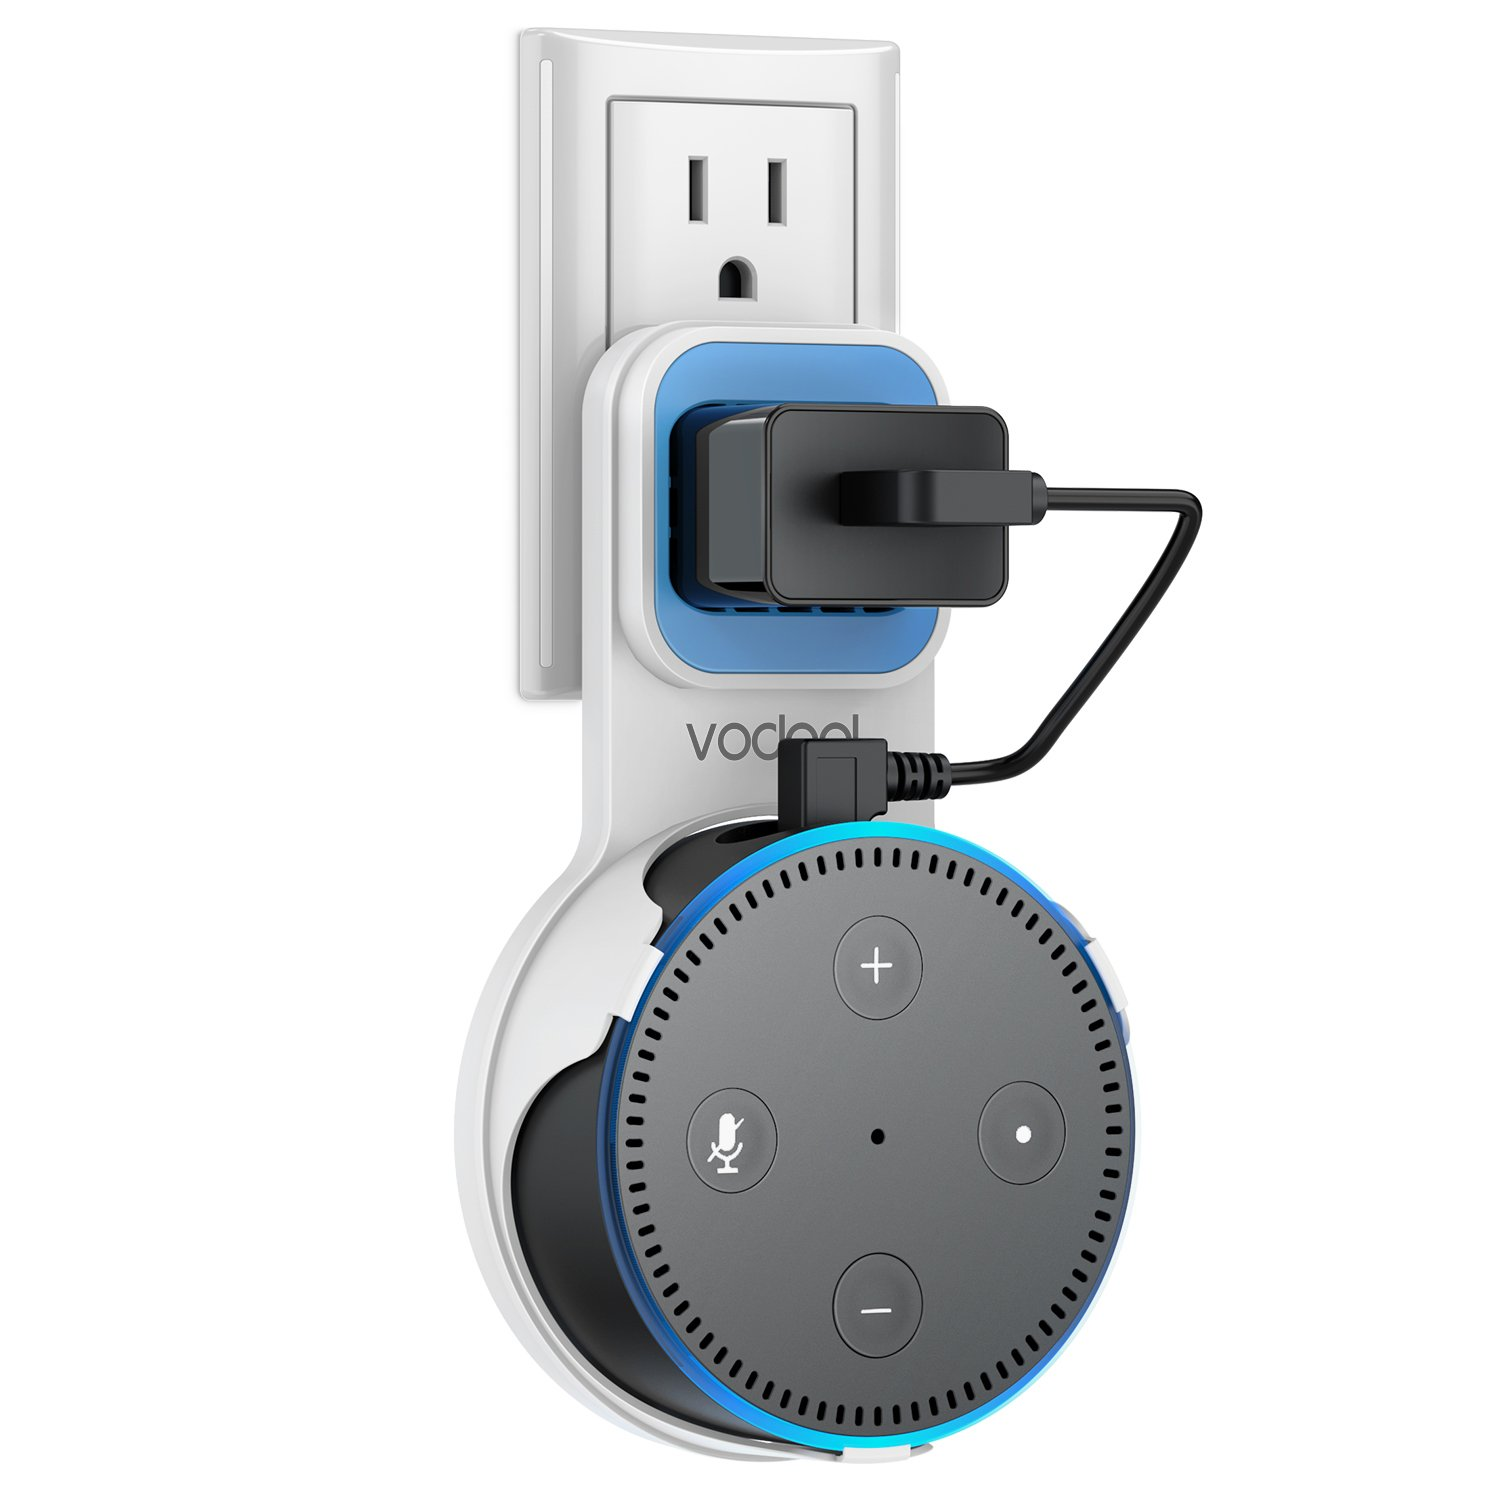 Vodool Outlet Wall Mount Holder for Google Home Mini, A Space-Saving Accessories for Google Home Mini Voice Assistant, Neat Cord Management (Ewhite)